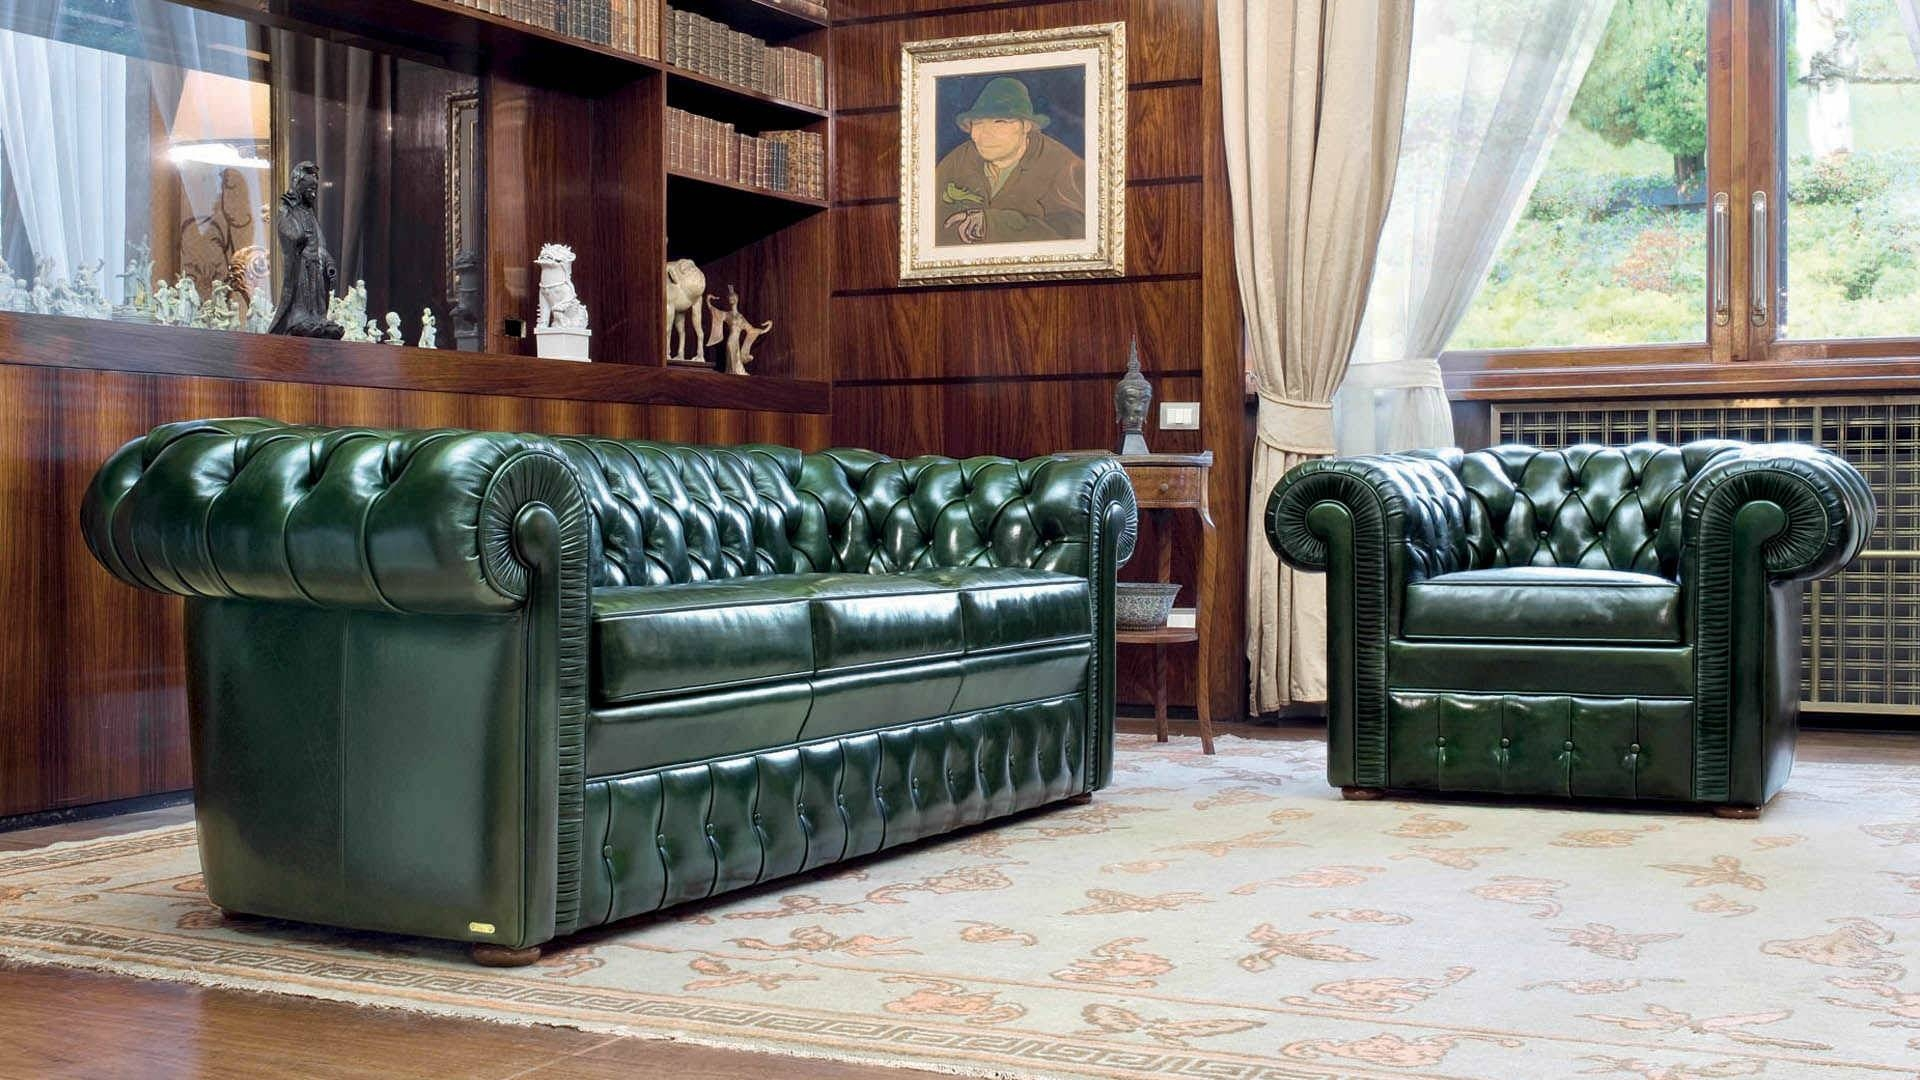 Chesterfield Sofa / Leather / 3-Seater / Green - Lancaster intended for Leather Chesterfield Sofas (Image 7 of 30)